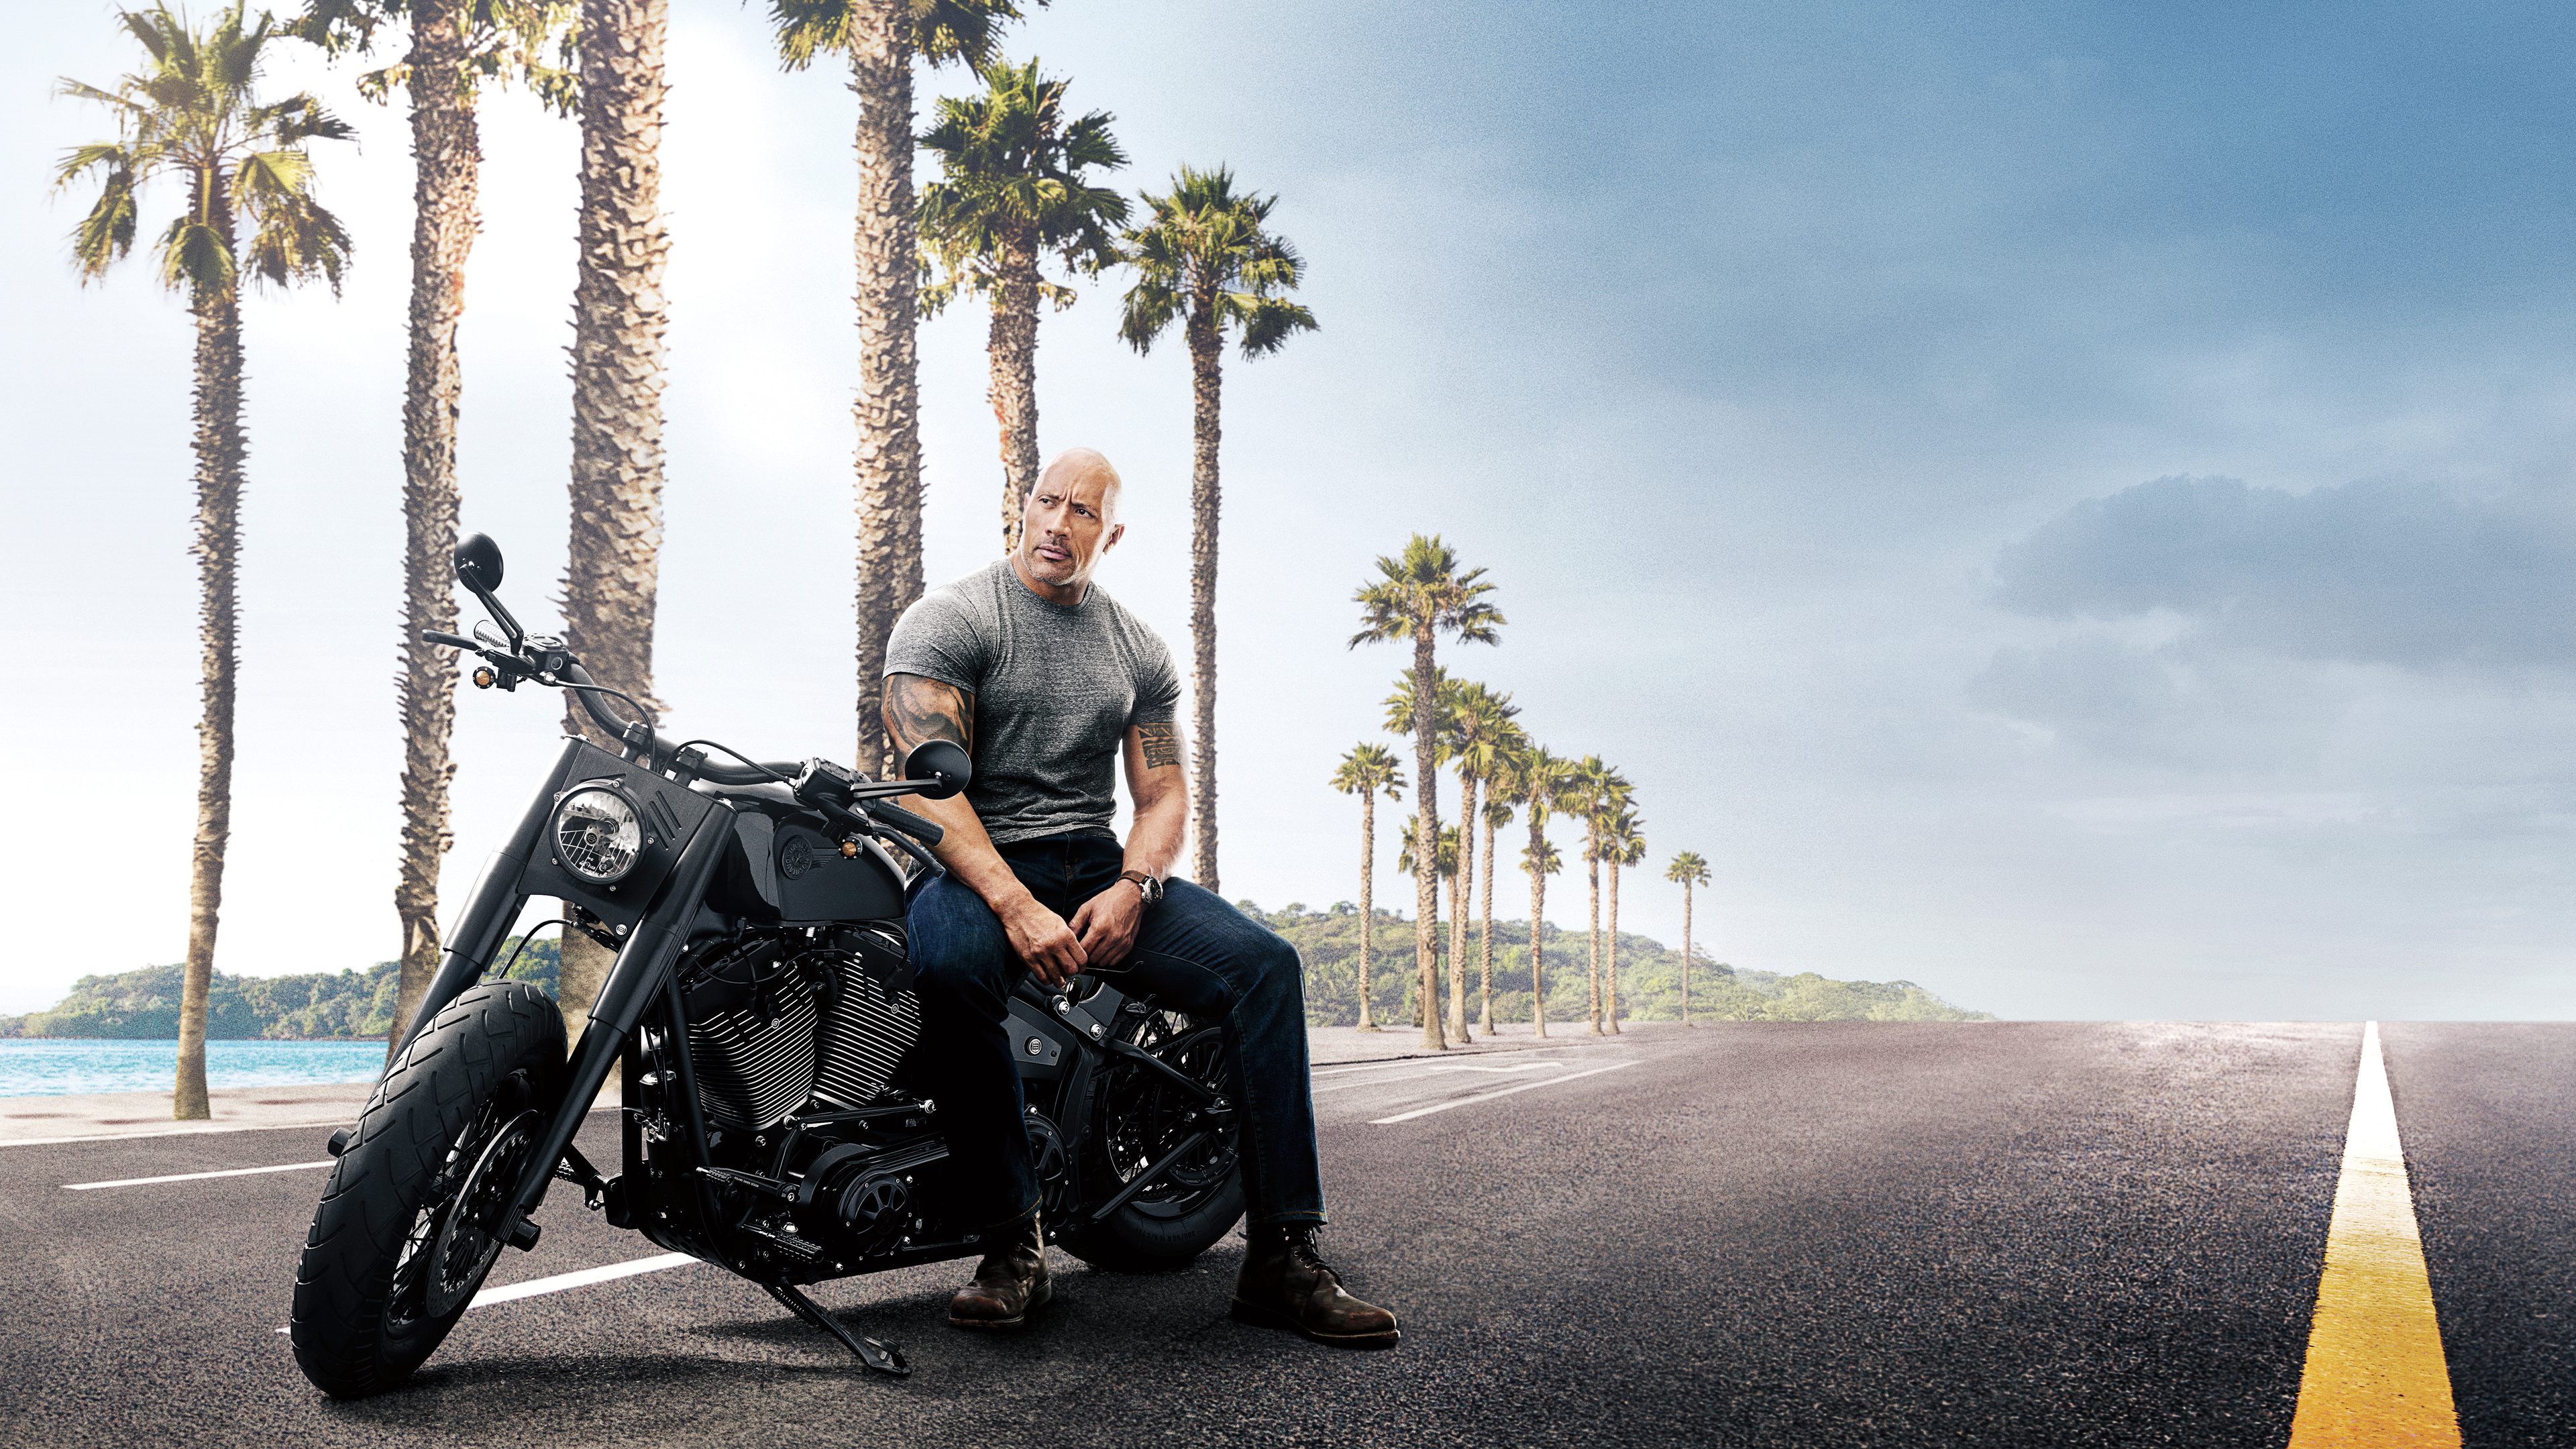 hobbs 1565052830 - Hobbs - movies wallpapers, hobbs and shaw wallpapers, hd-wallpapers, dwayne johnson wallpapers, 8k wallpapers, 5k wallpapers, 4k-wallpapers, 2019 movies wallpapers